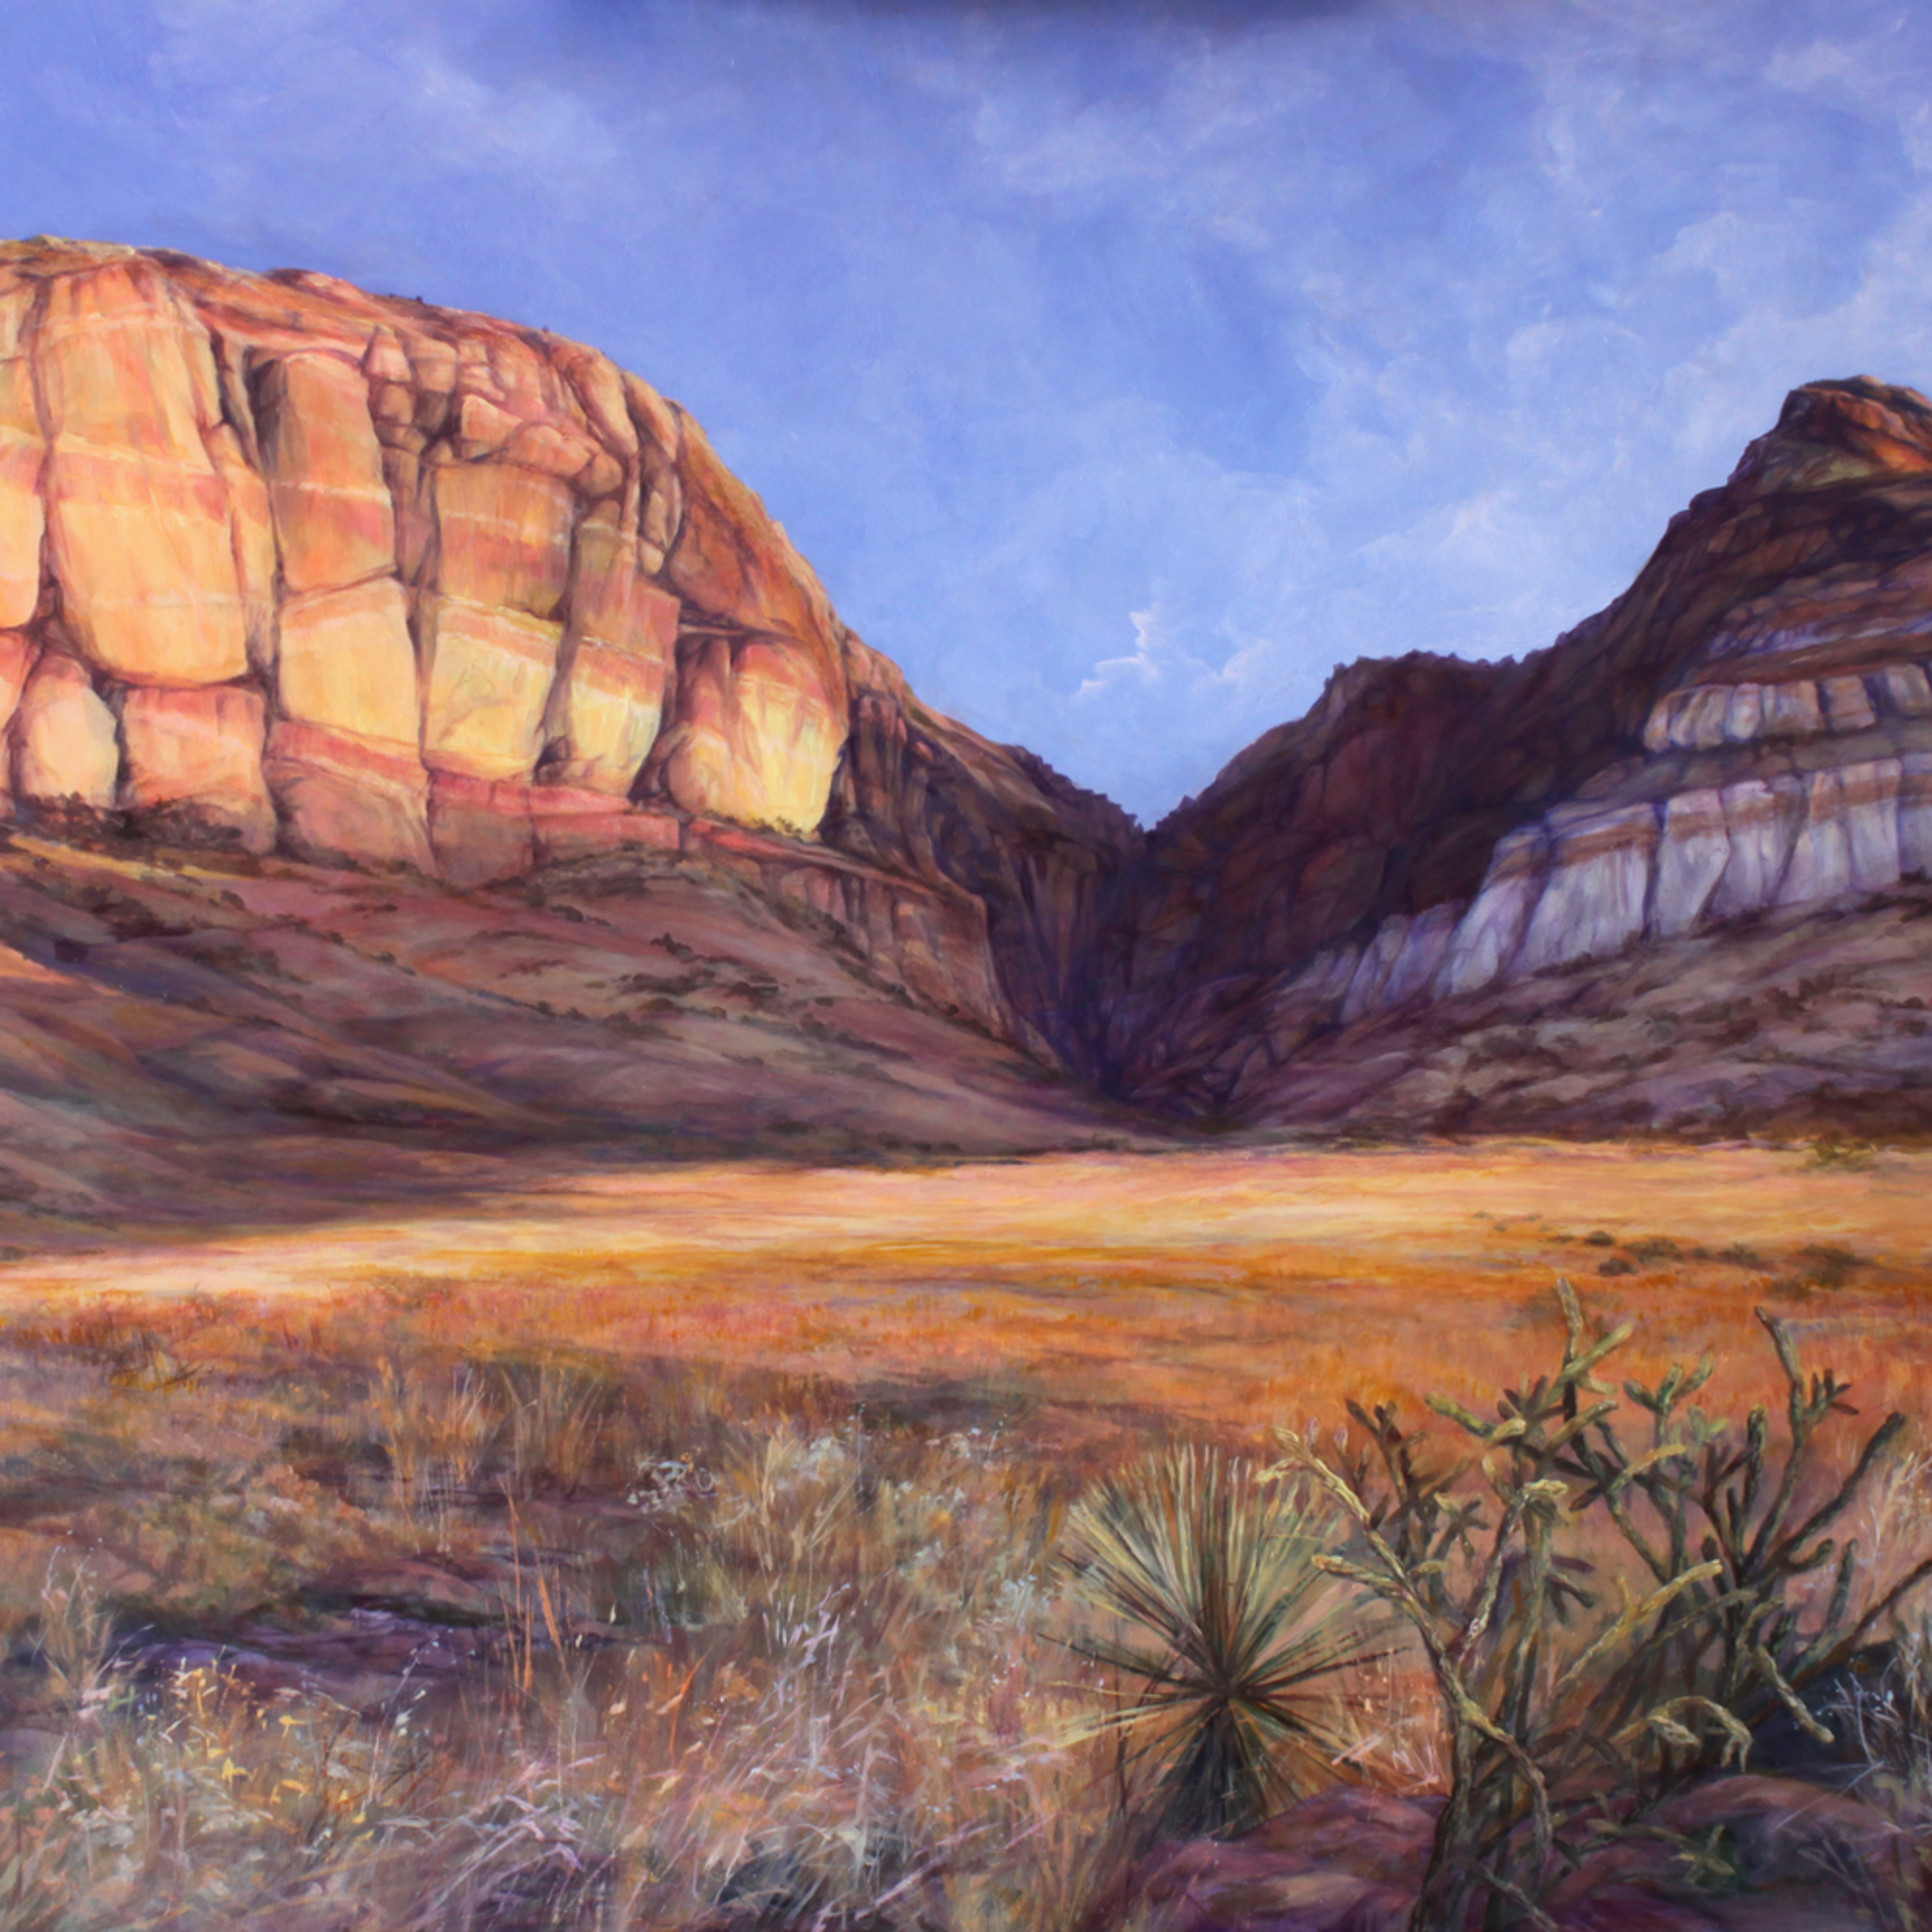 13e18 drenched in dawn 24 22 x 36 22 oil lindy cook severns nx6ba6